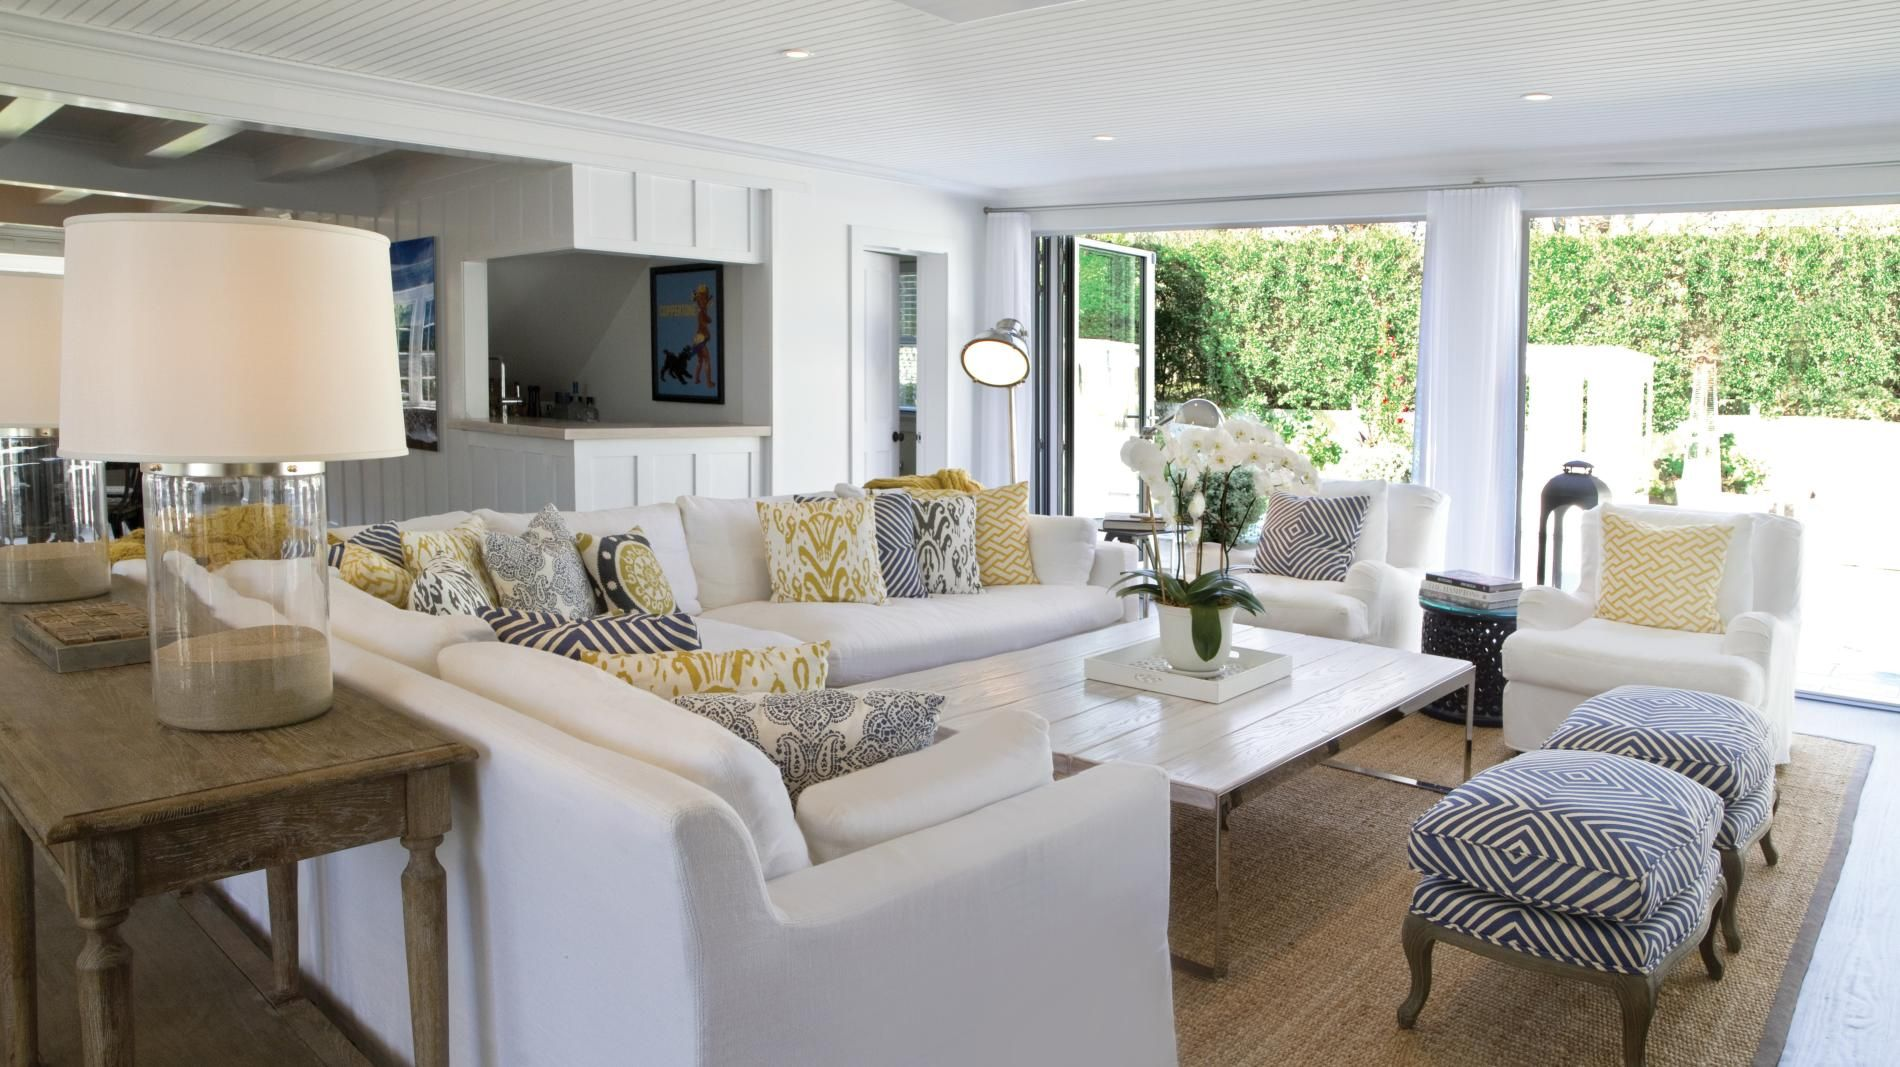 Beautifully Seaside Formerly Chic Coastal Living East Hampton Beach House